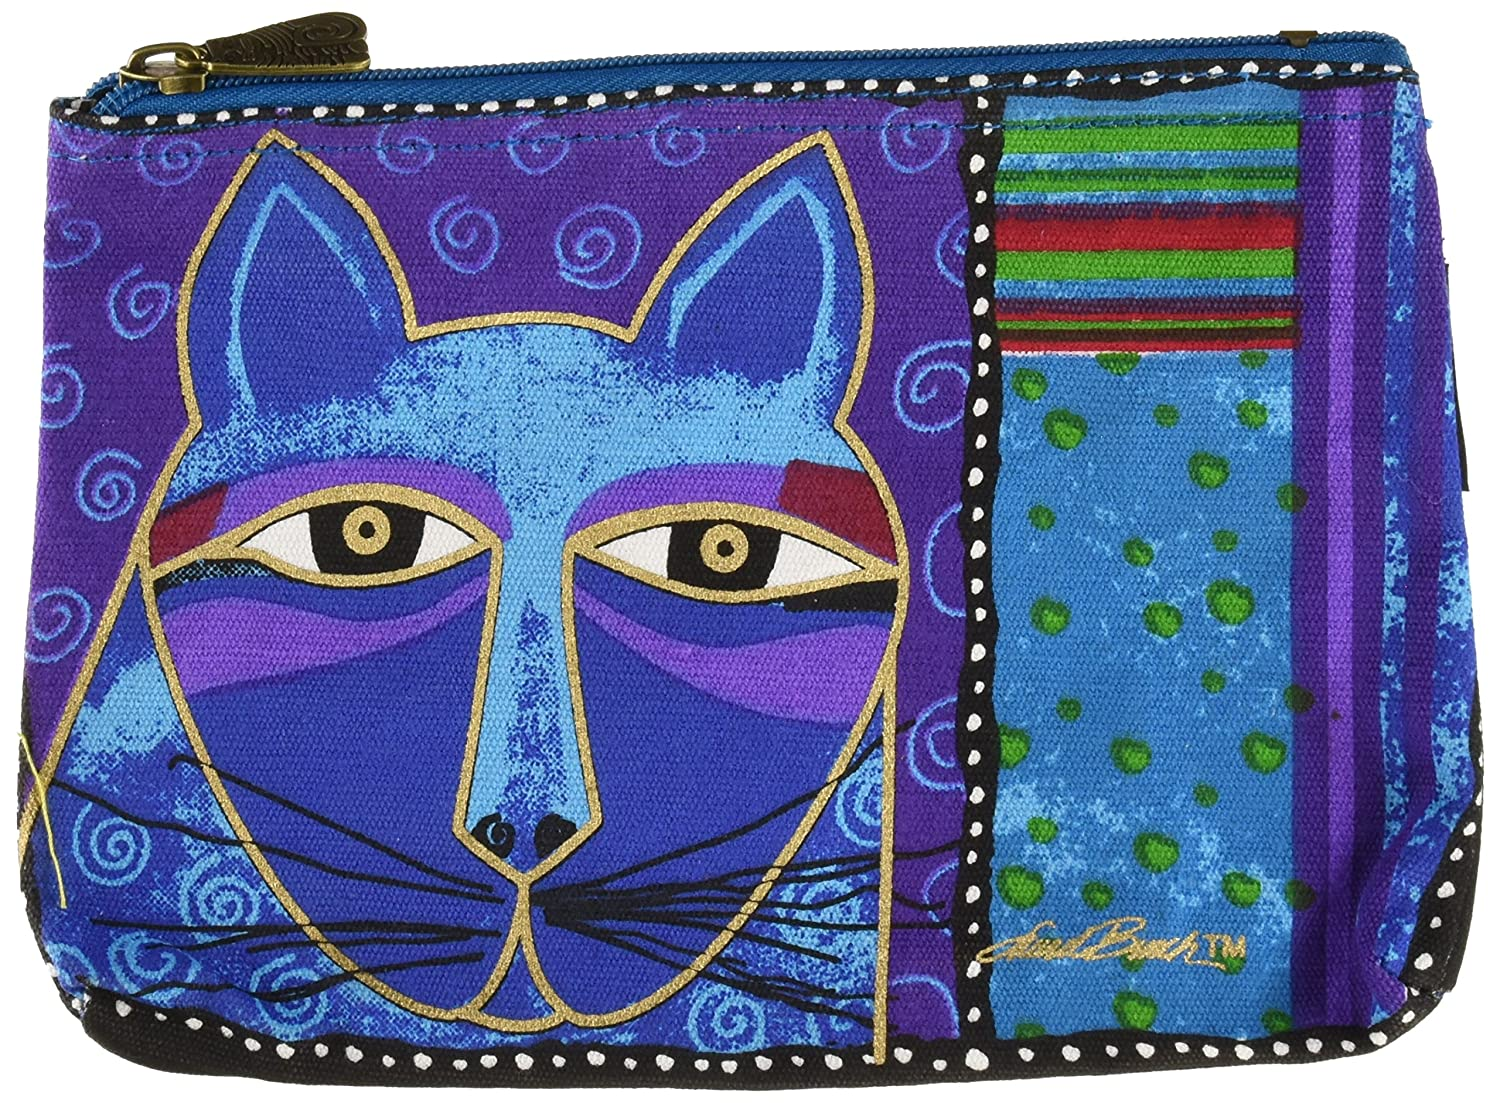 Laurel Burch LB5321 Zipper Top Cosmetic Bag, 9-1 4 by 6-3 4-Inch, Whiskered Cats Colors May Vary